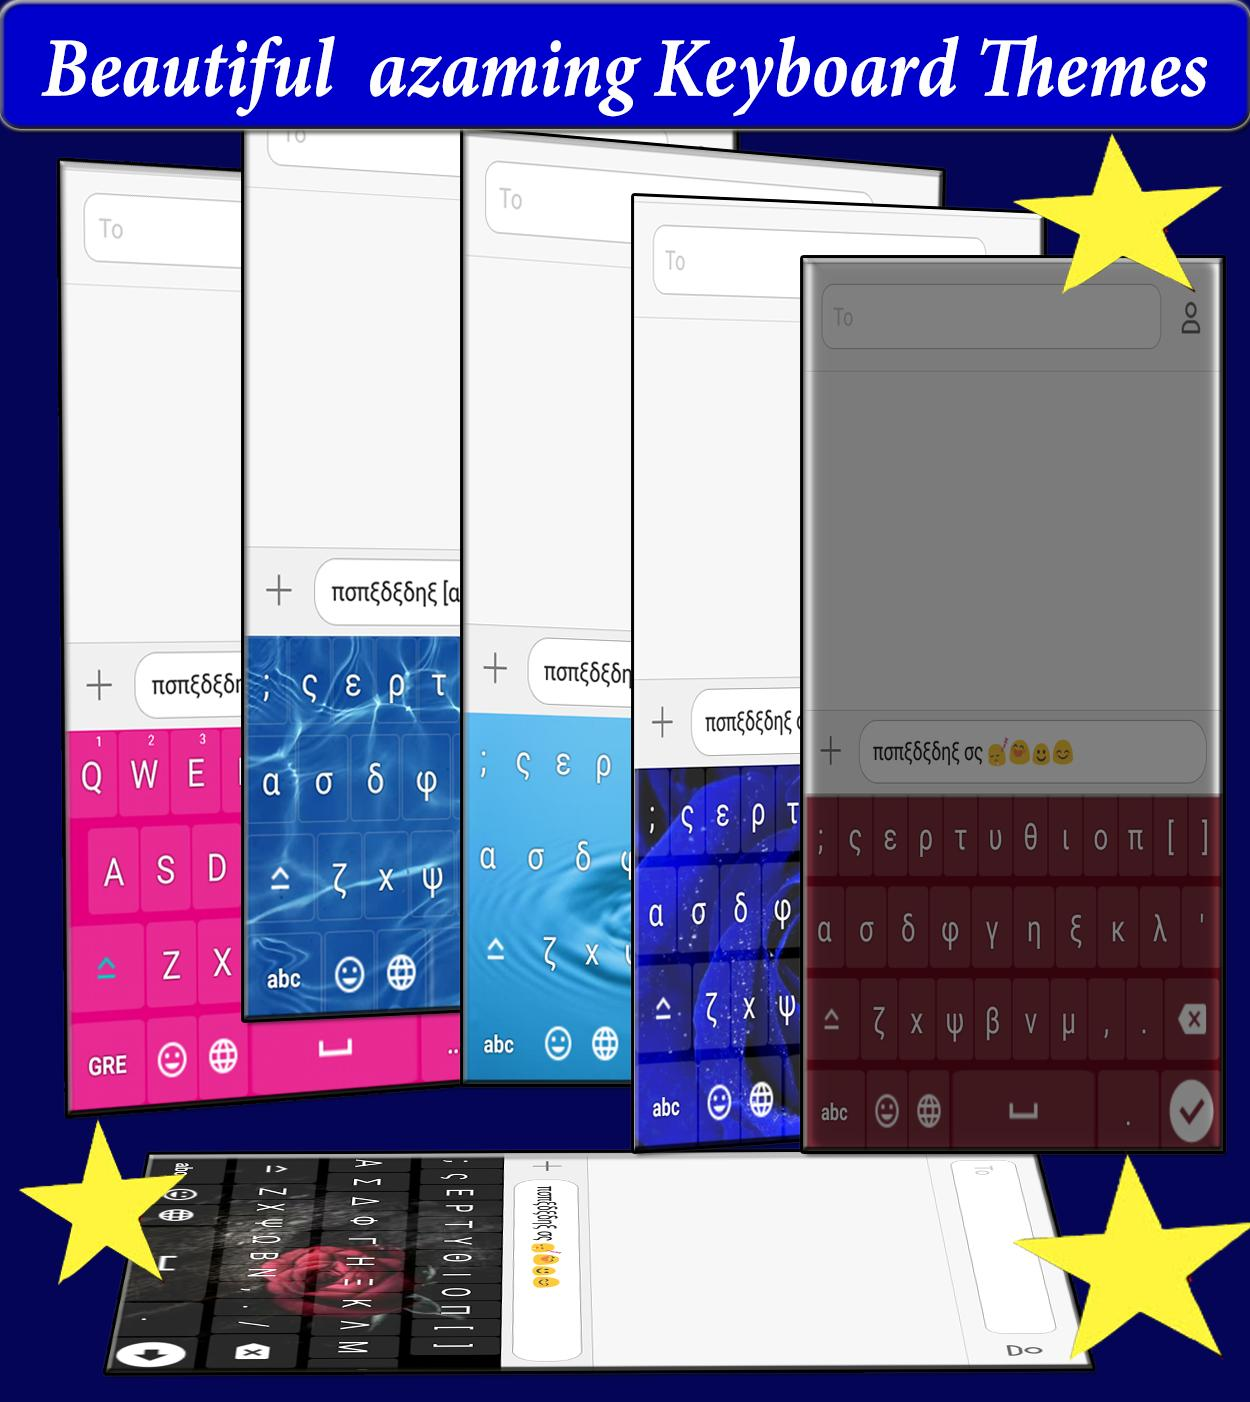 Greek Keyboard for Android - APK Download